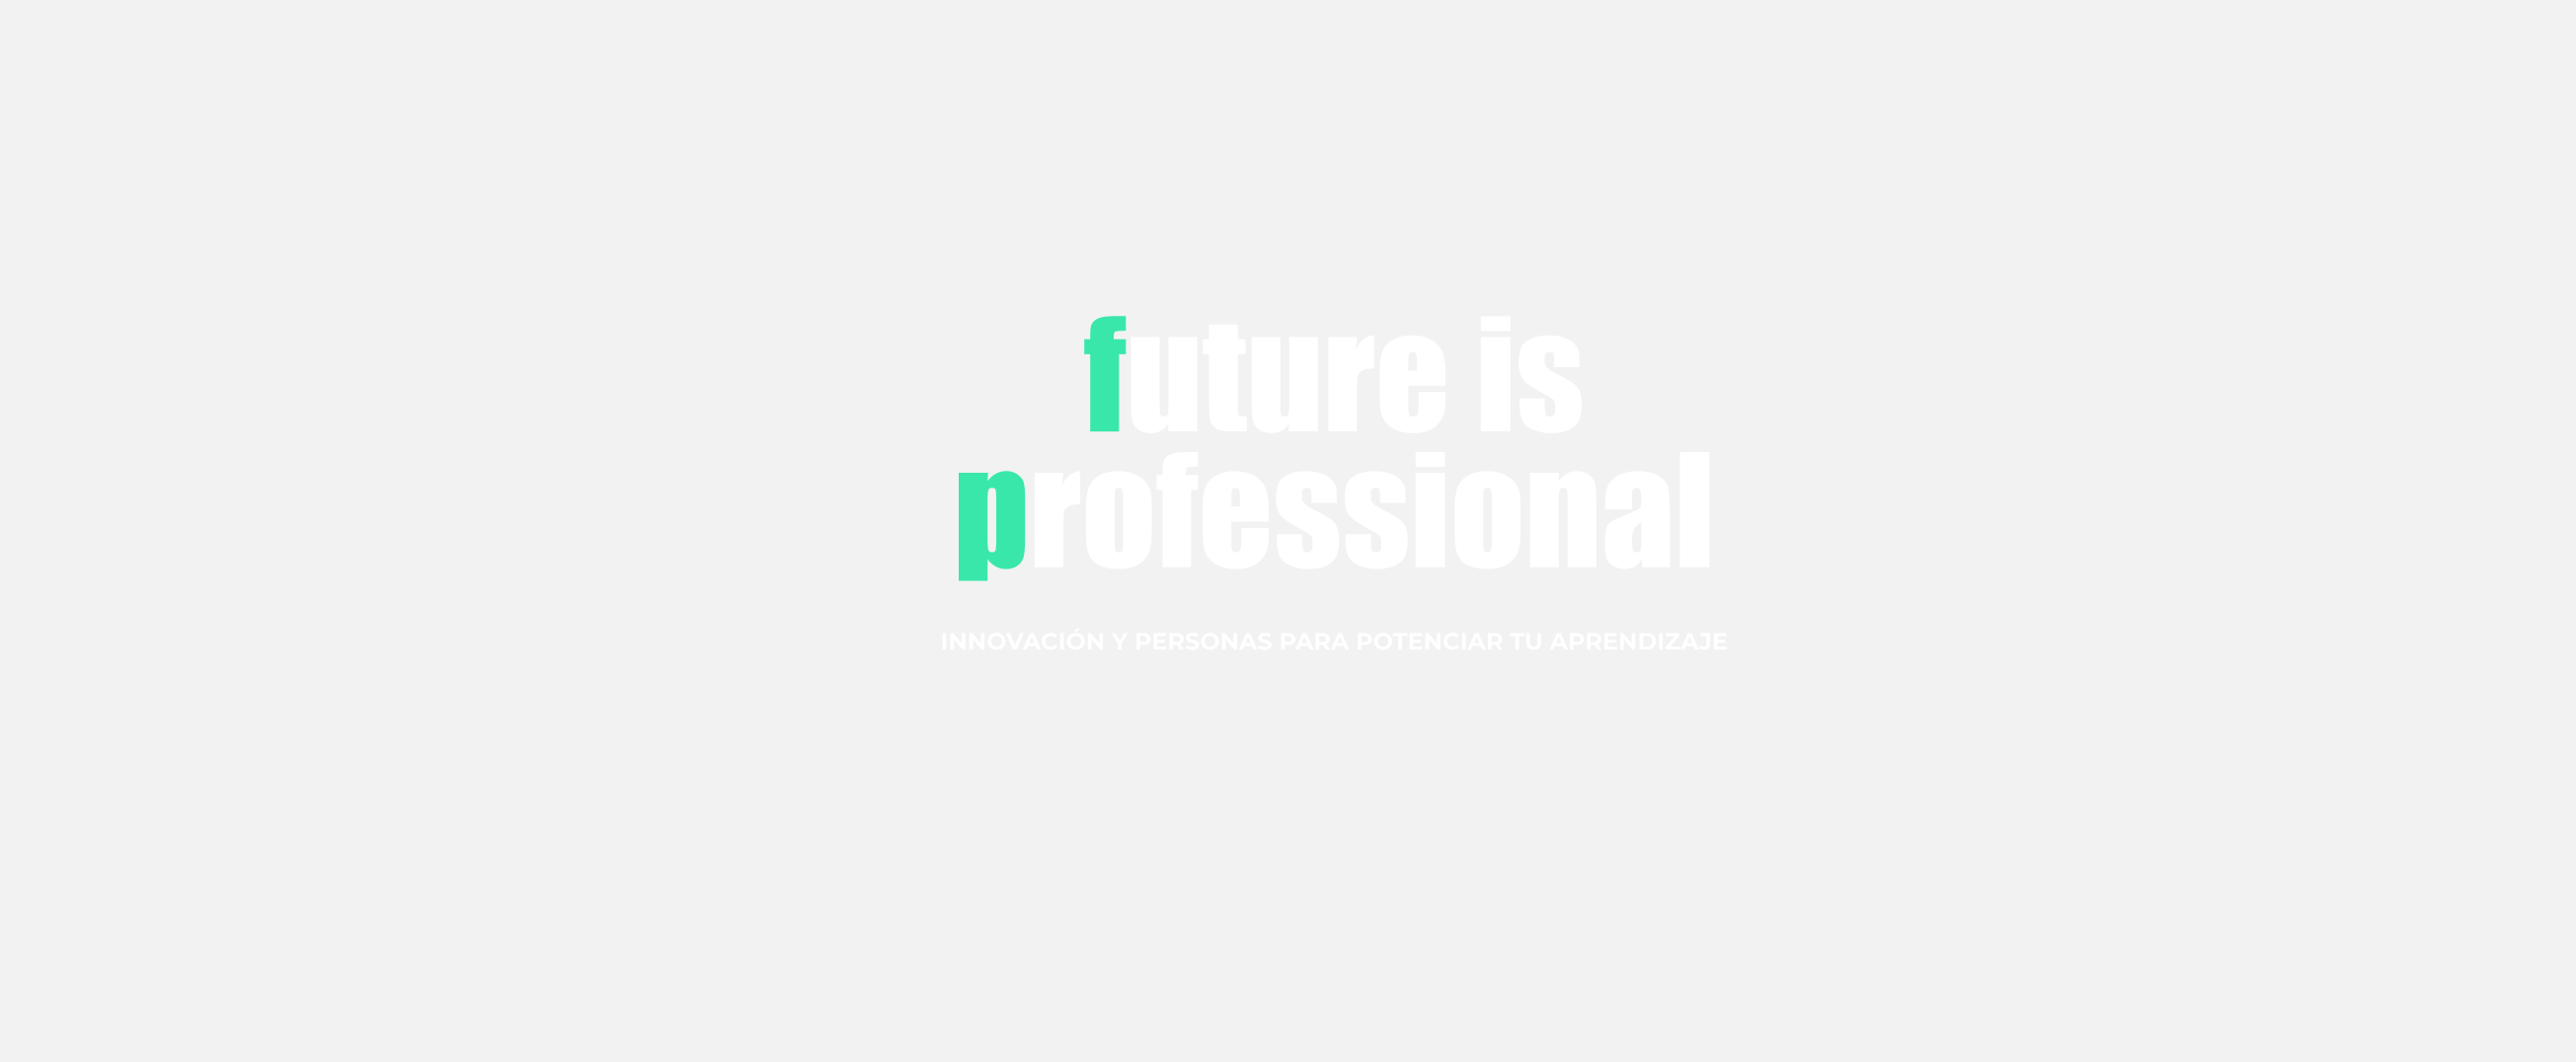 Future is professional